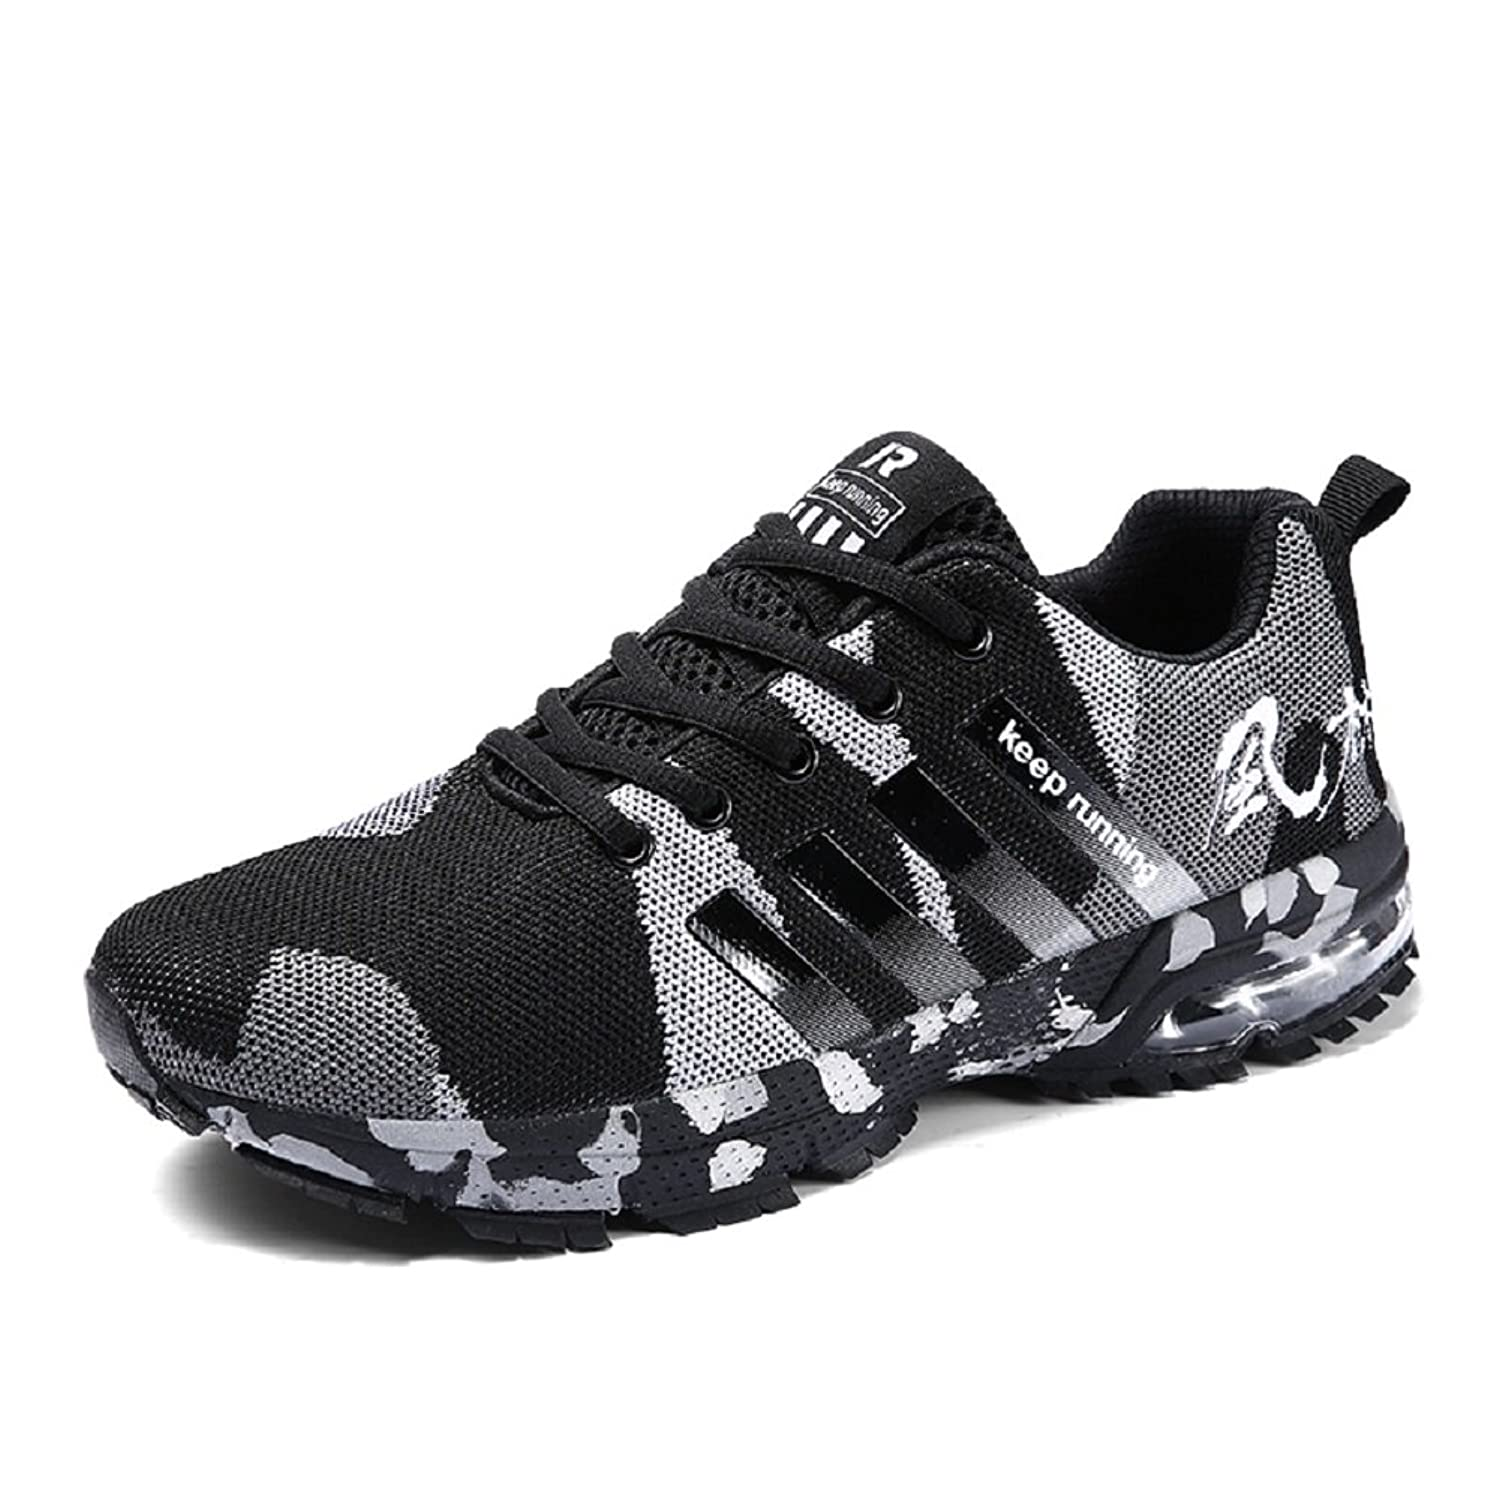 AHICO Running Shoes for Men and Women Air Cushion Sneaker Walking Athletic Sports Training Casual Walking Sneaker Shoe Cheap B07DPKK8P9 10 US Men= EU 44,Black-1 c58833